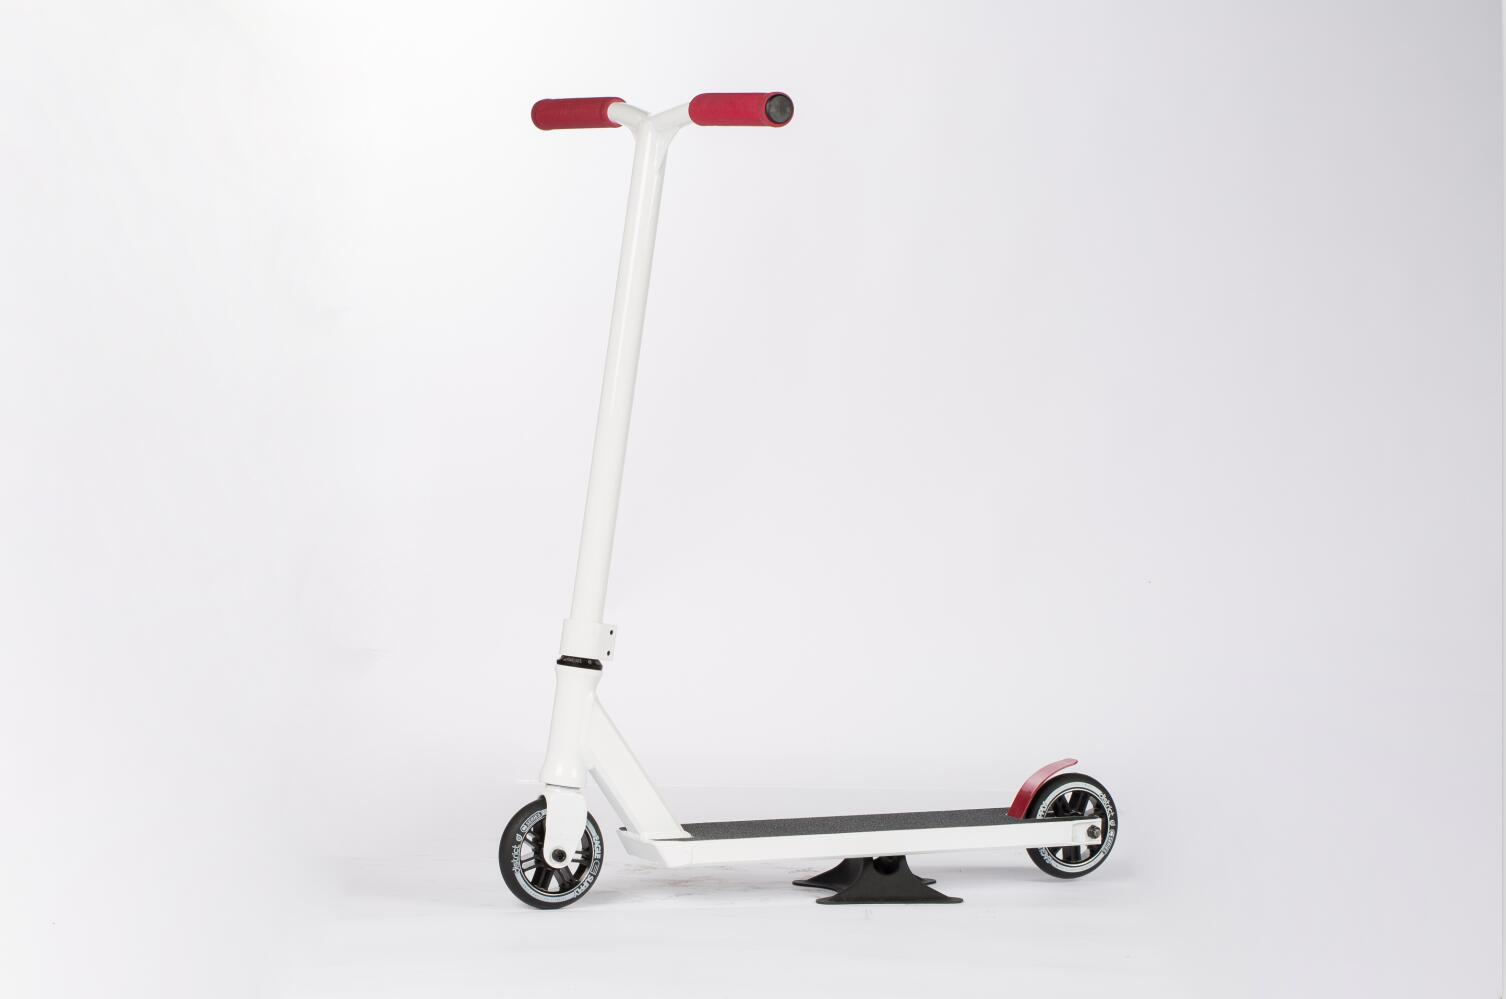 LED Light Stunt Scooter